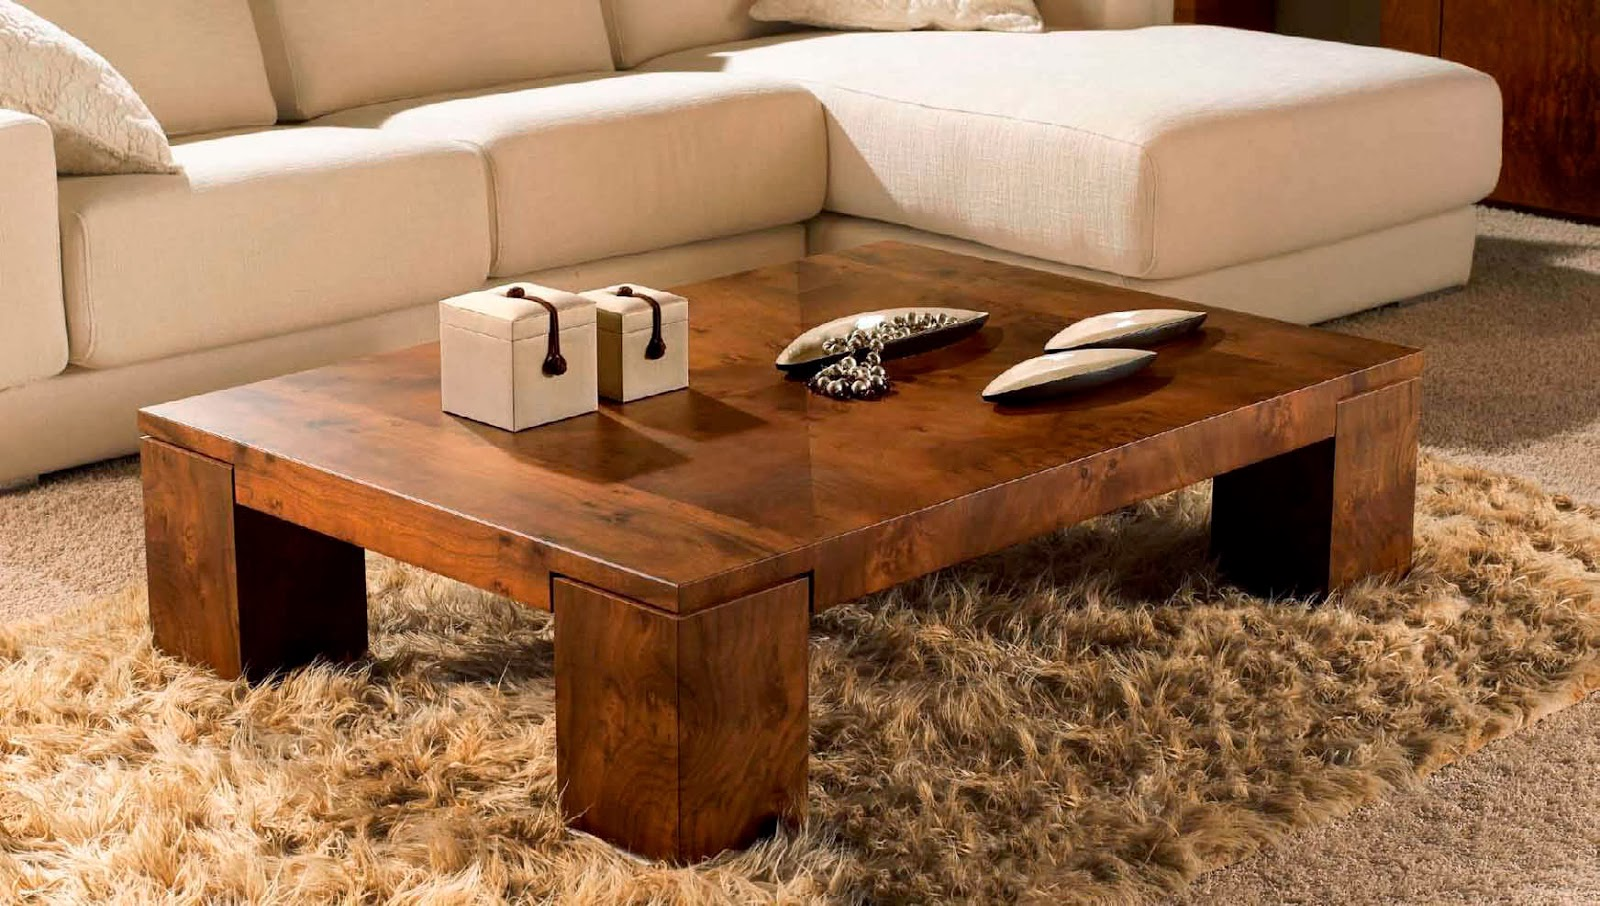 wooden coffee table design ideas photo - 4